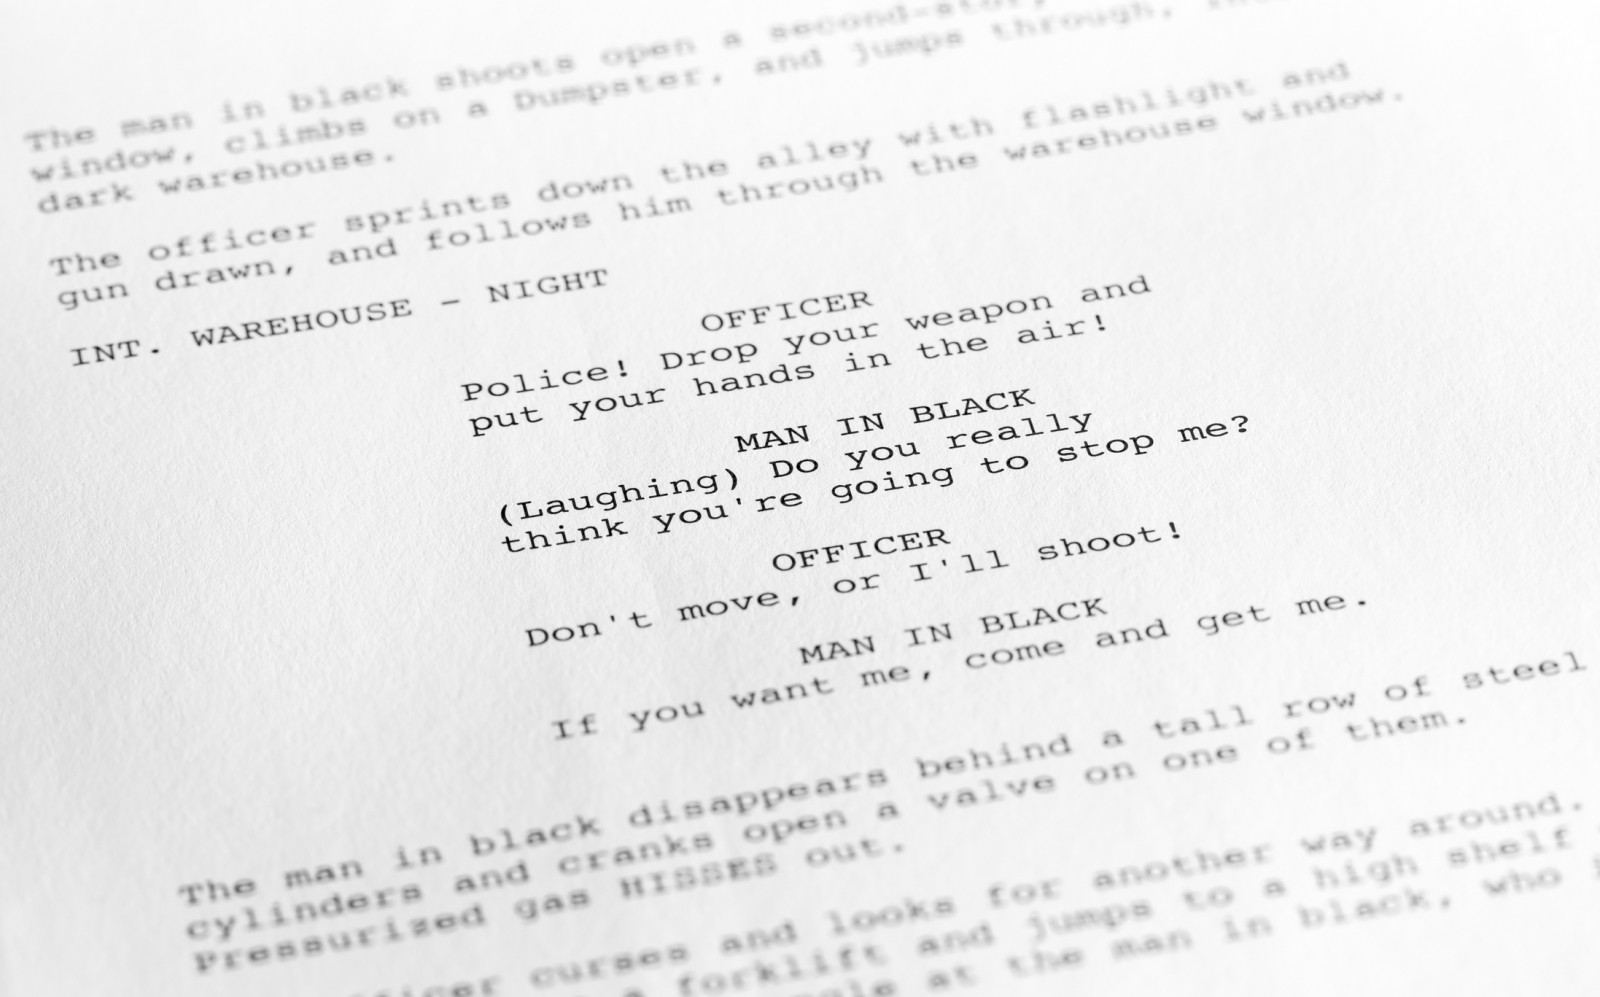 screenplay close up 1 generic film text written by photographer september 17